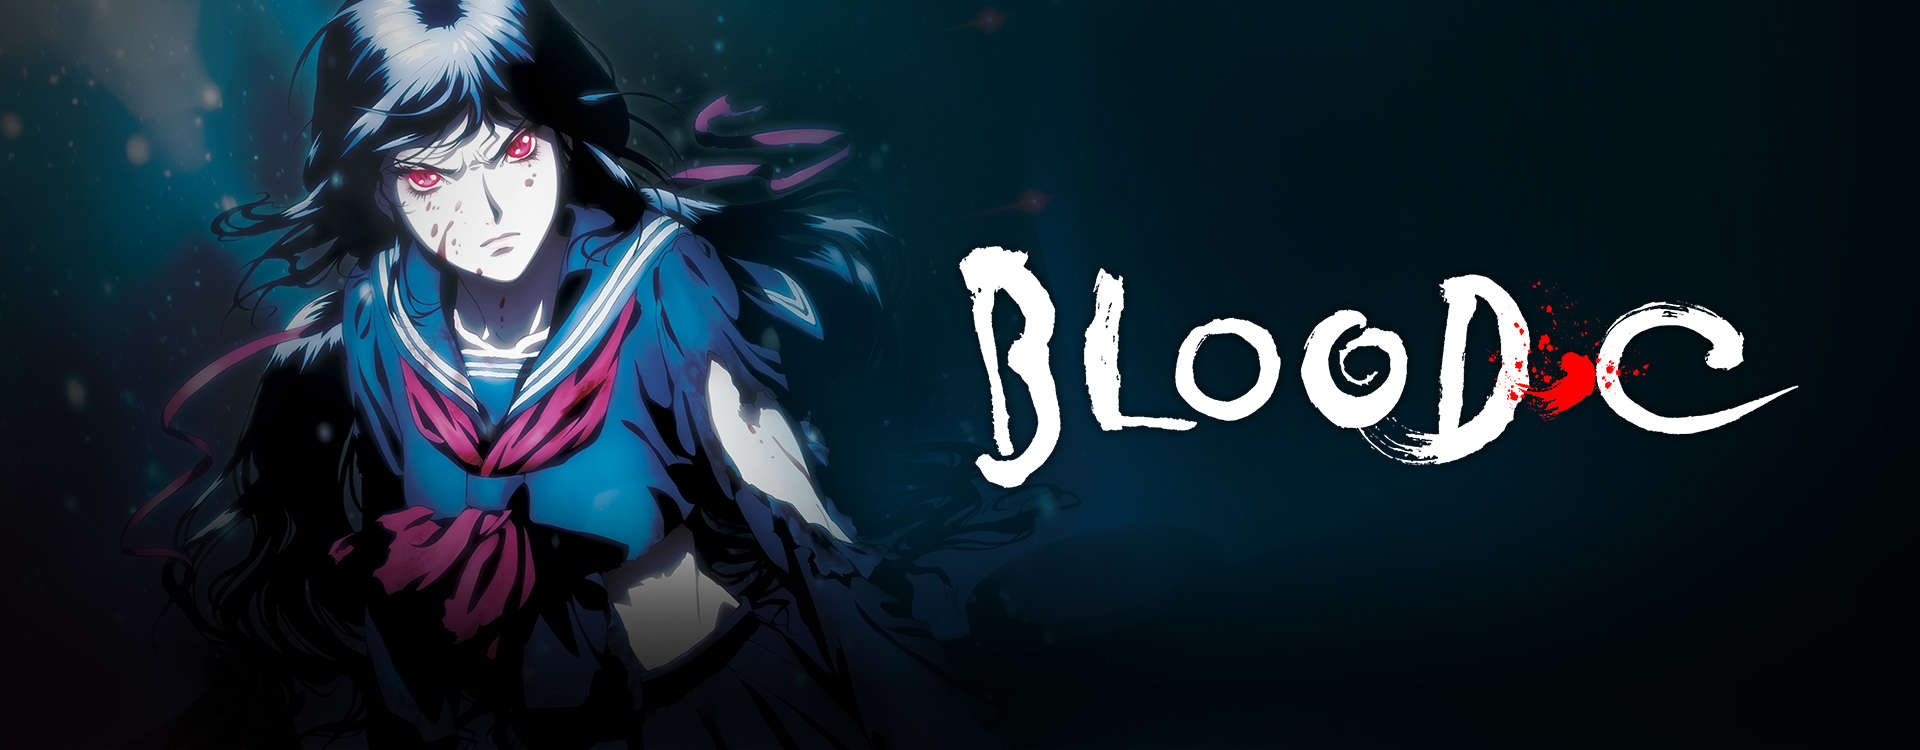 blood c anime stream